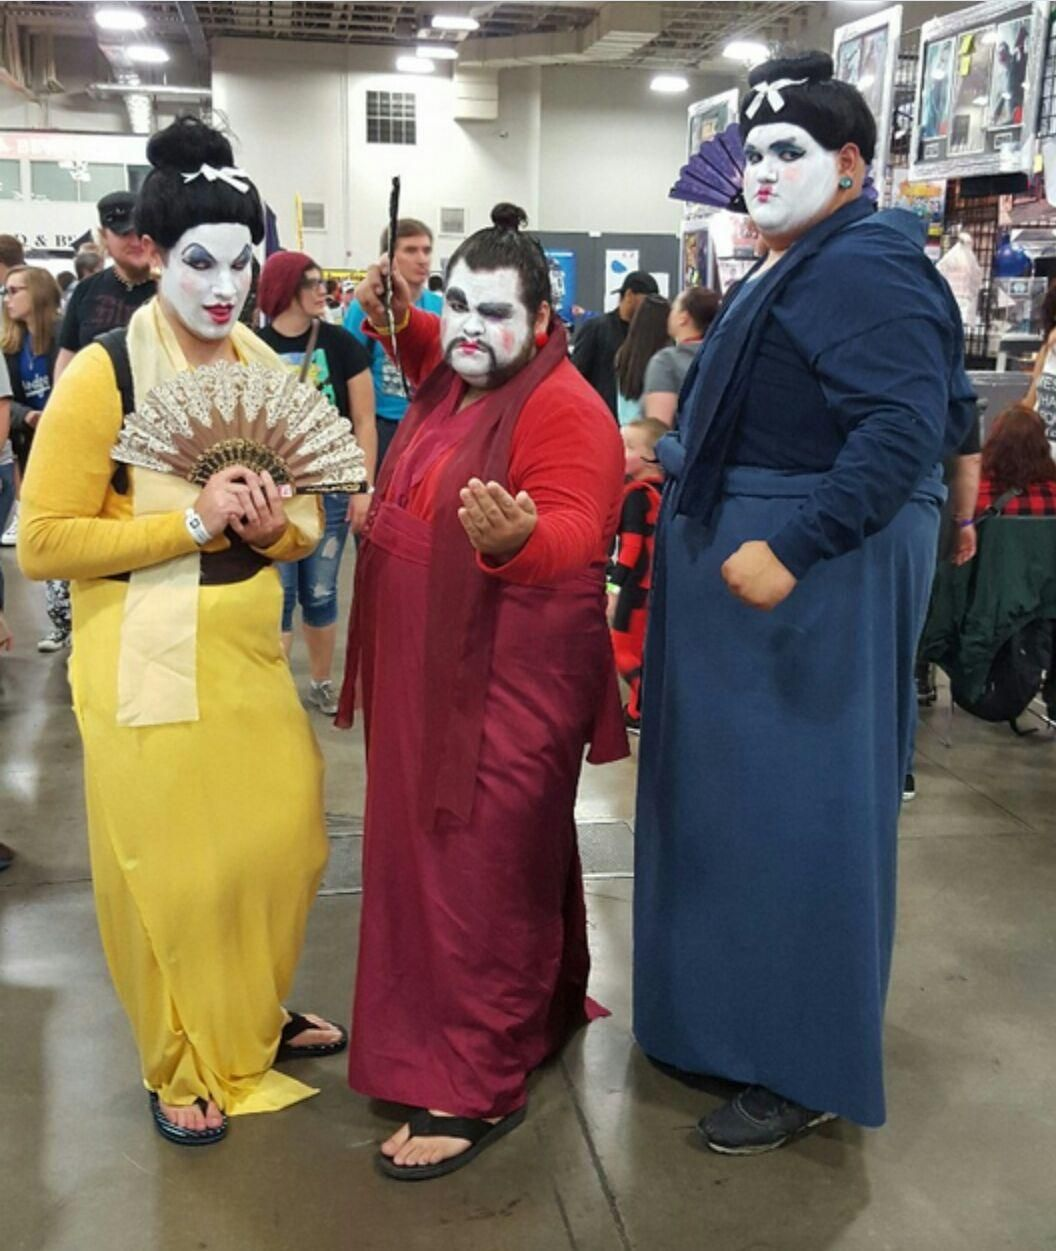 50 Enchanting Group Halloween Costume Ideas Inspired From ...